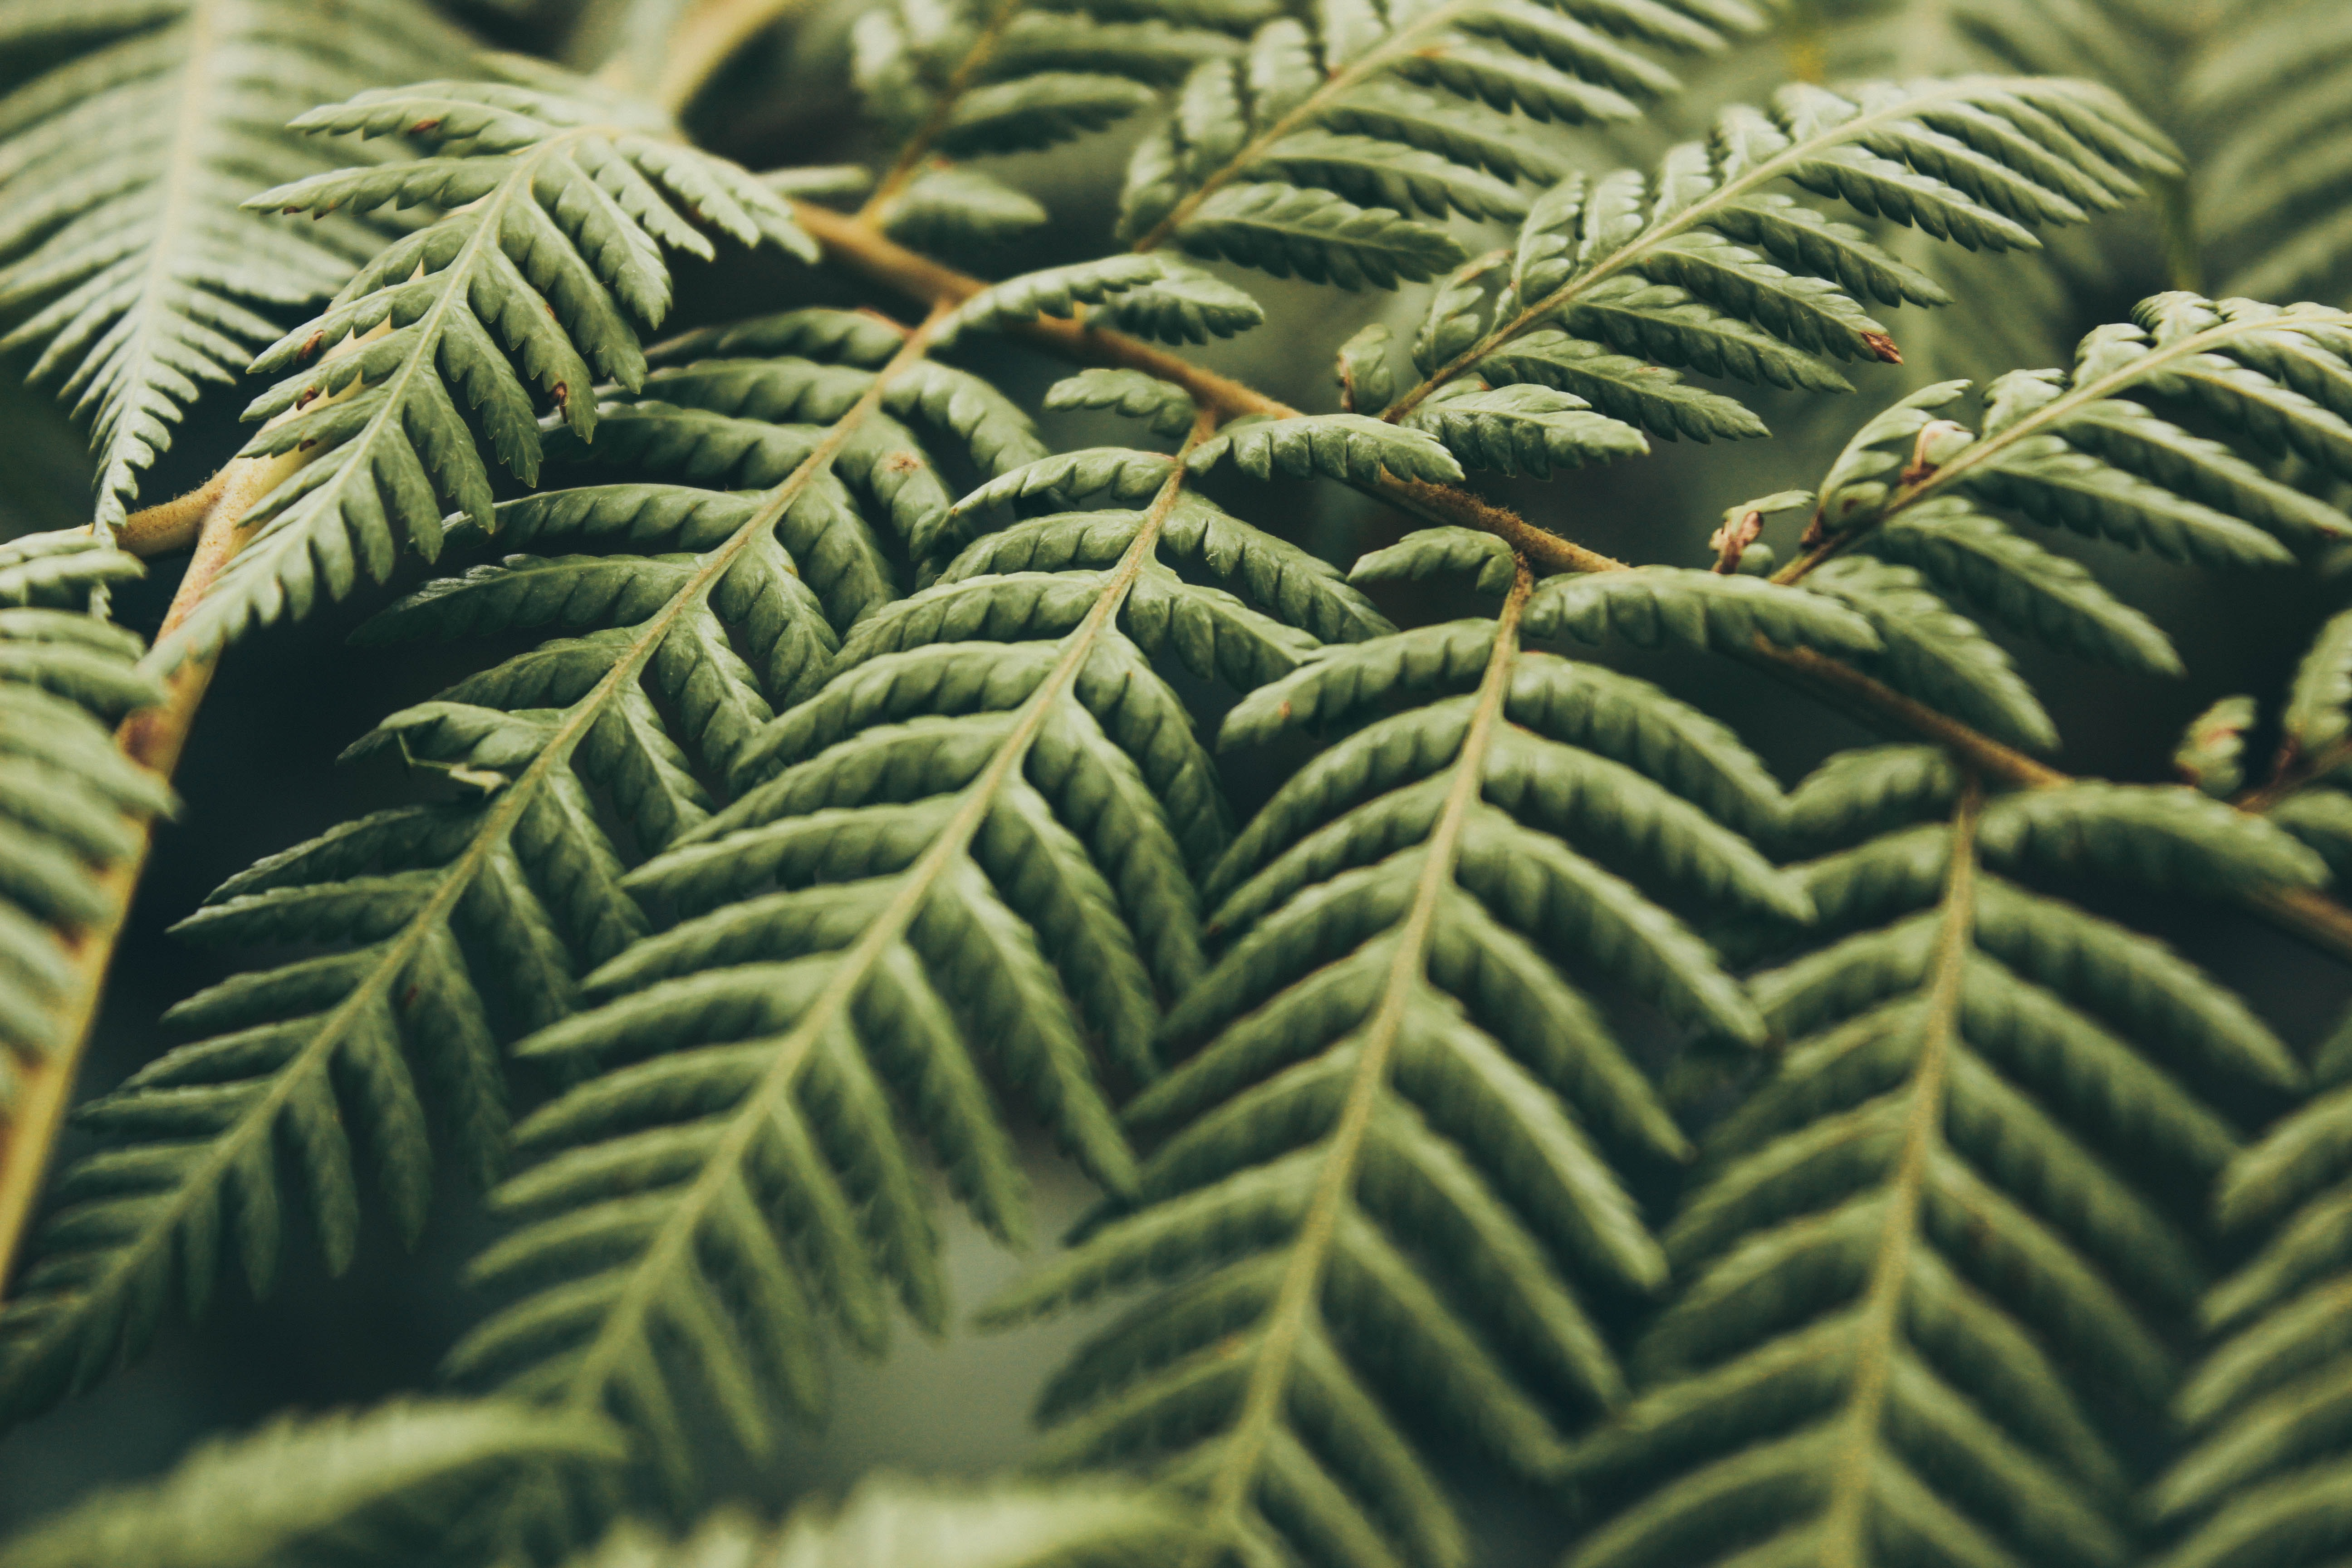 closeup photo of green leafed tree